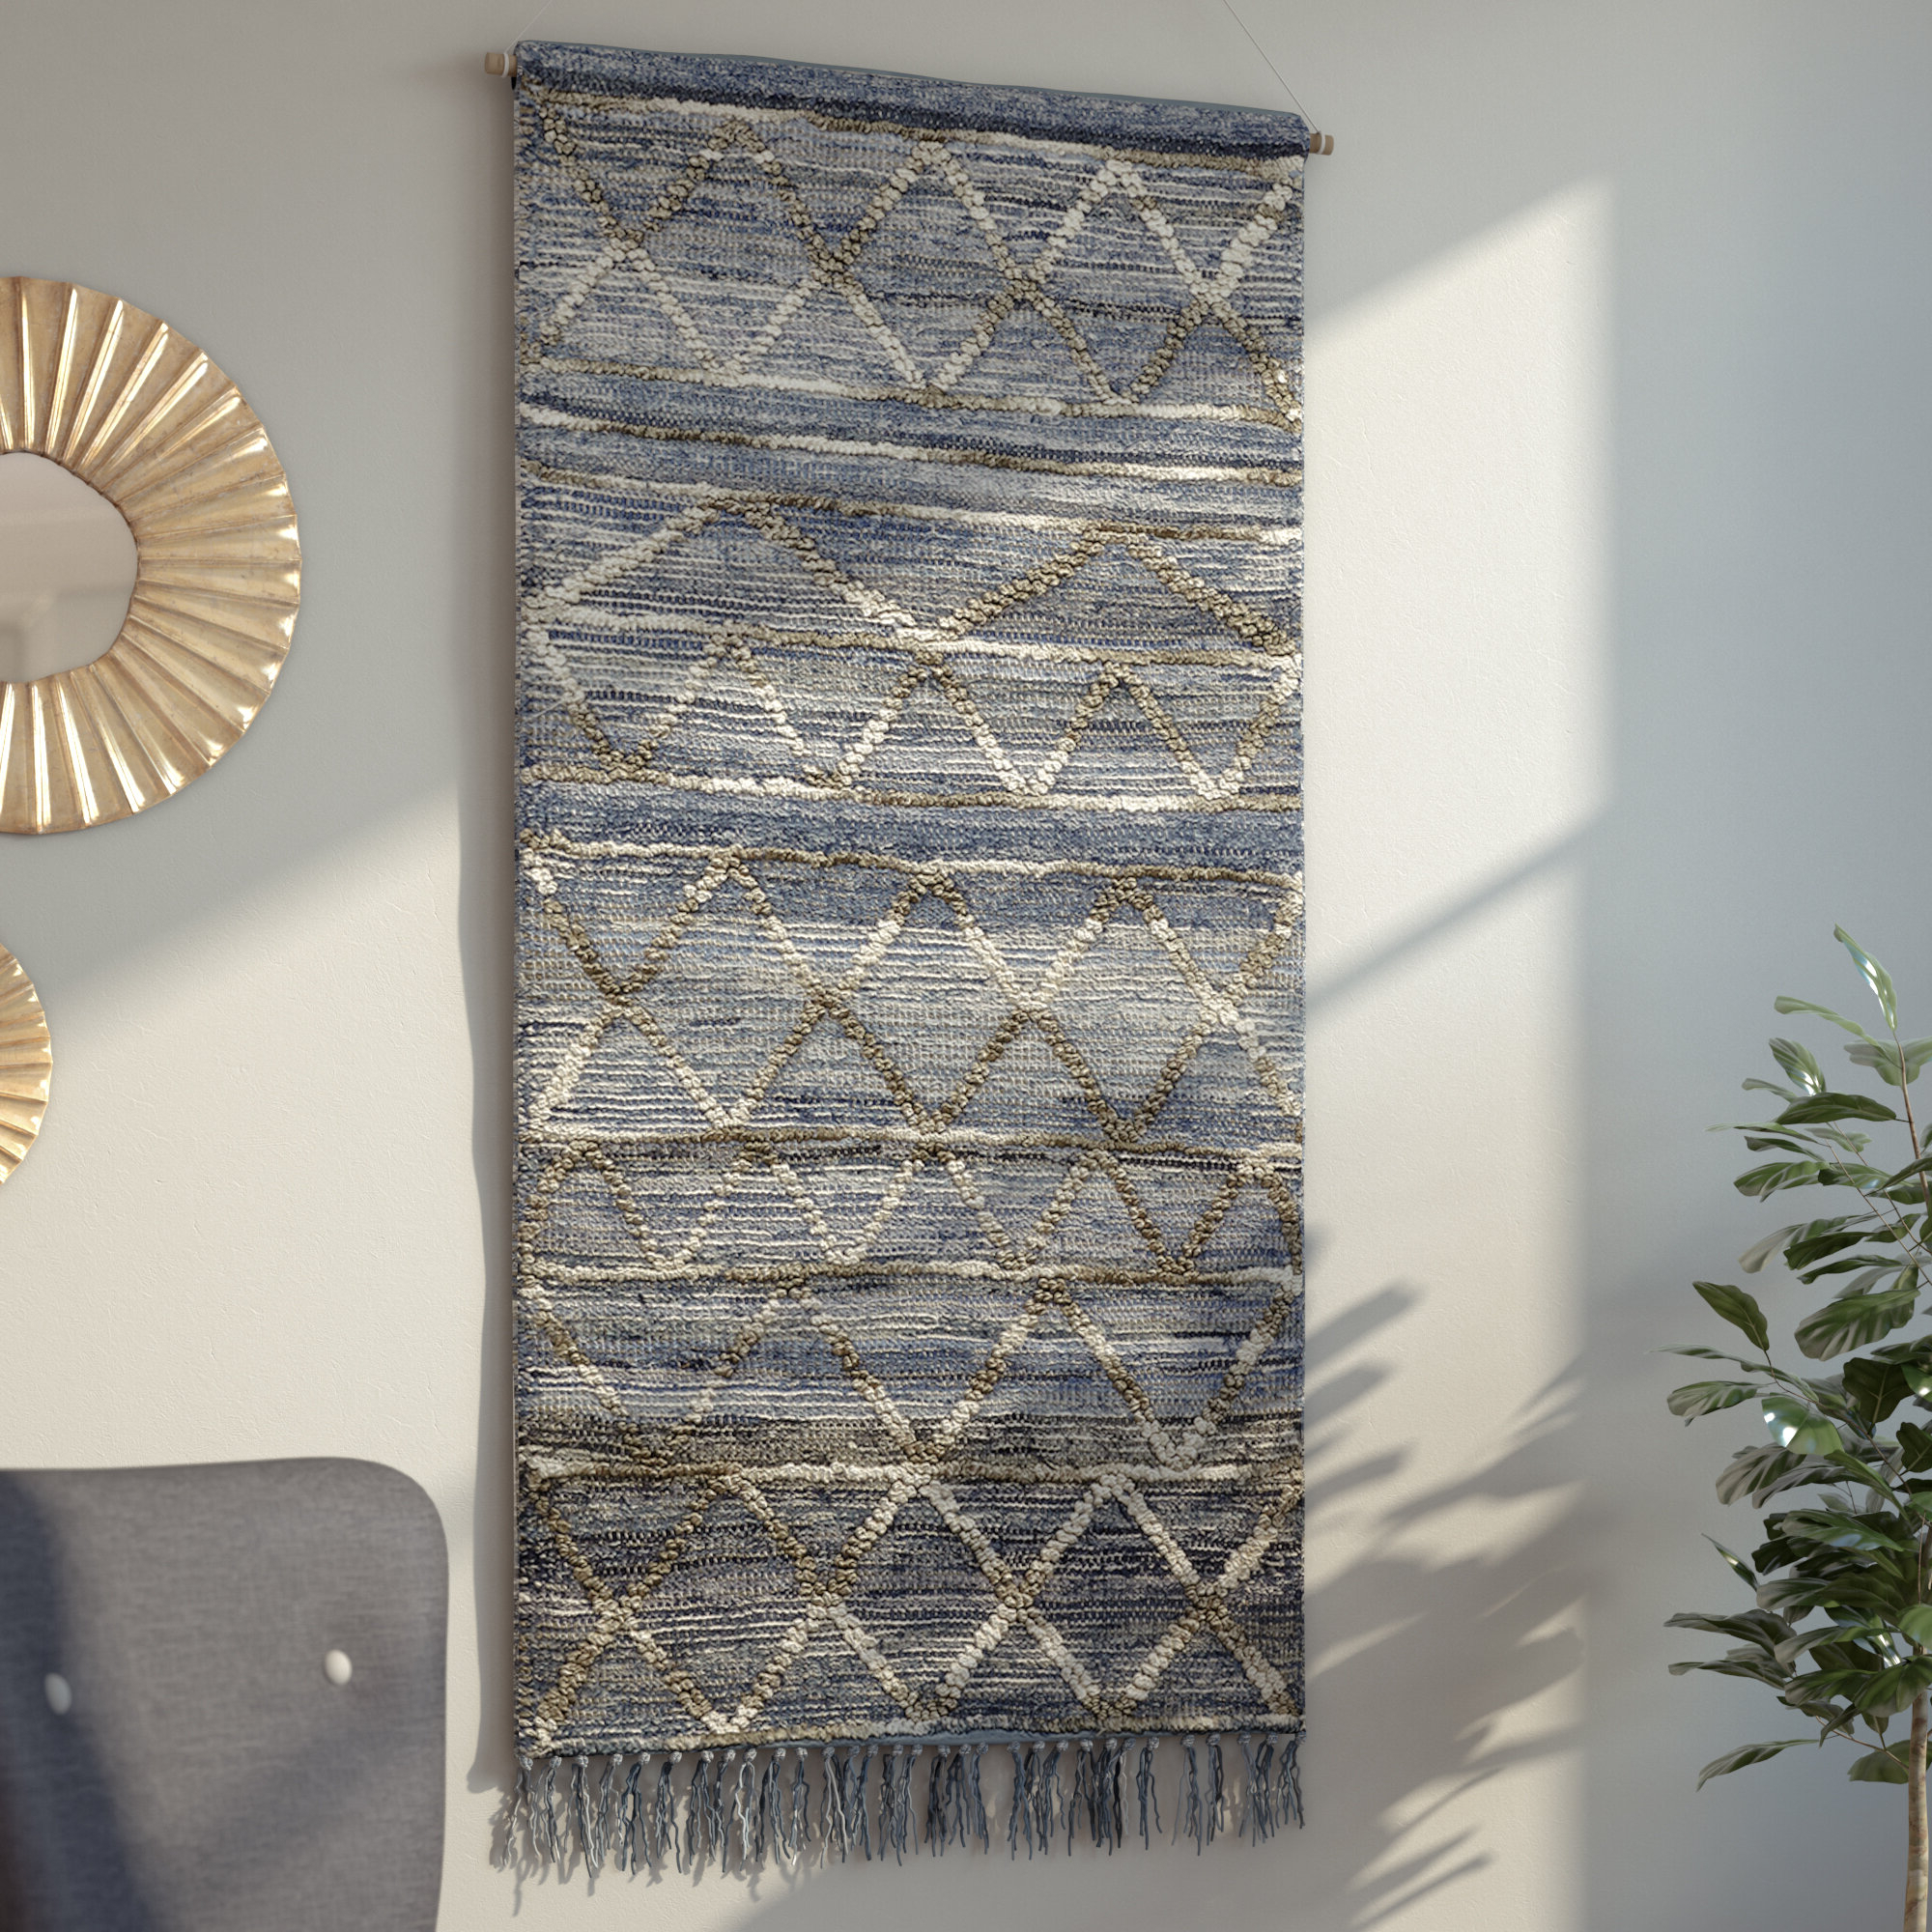 Favorite Blended Fabric Living Life Tapestries For Blended Fabric Wall Hanging With Hanging Accessories (View 9 of 20)